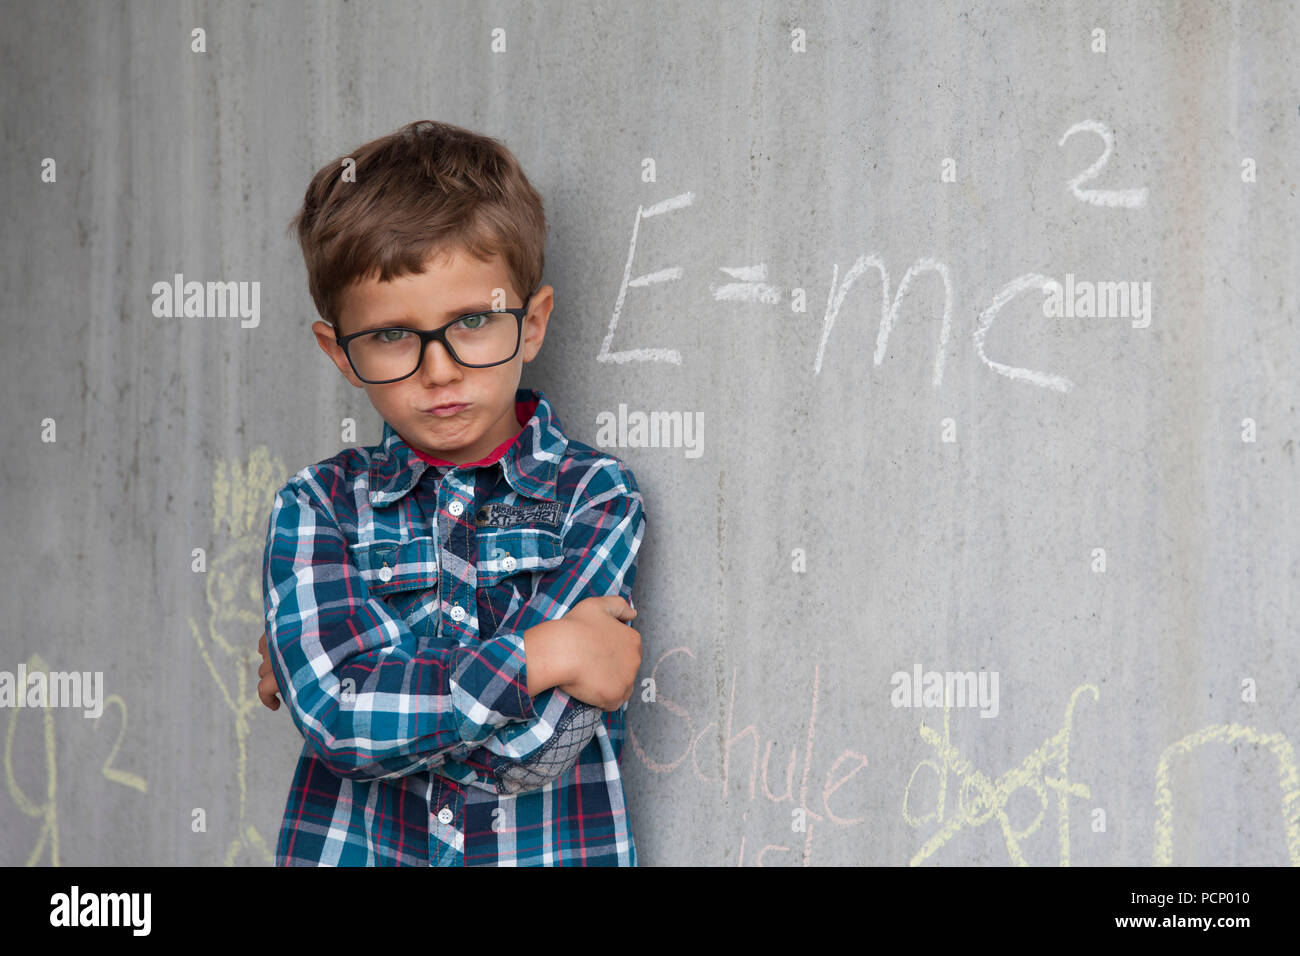 First-grader with glasses and mathematical formula, theory of relativity - Stock Image